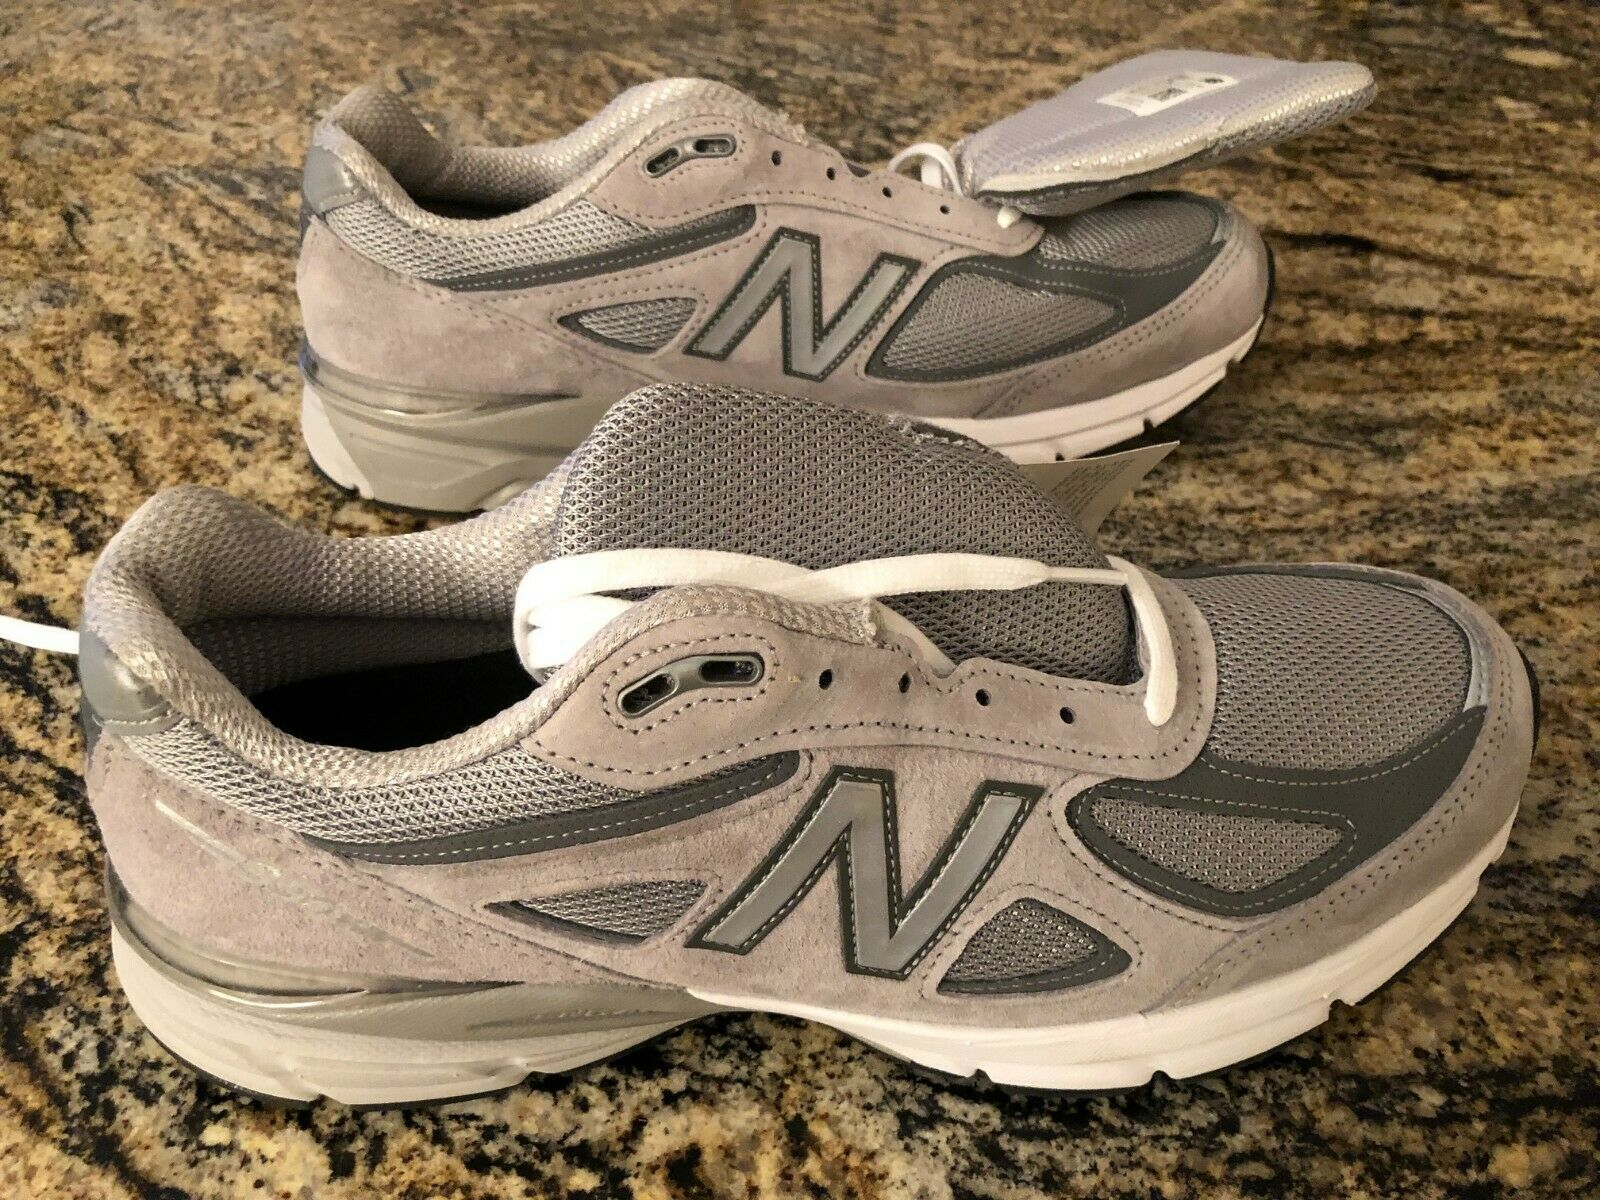 Balance Men S 990v4 Made In Usa Shoes Grey Men S Size 10 5 M990gl4 D Usa Shoes Shoes Running Shoes